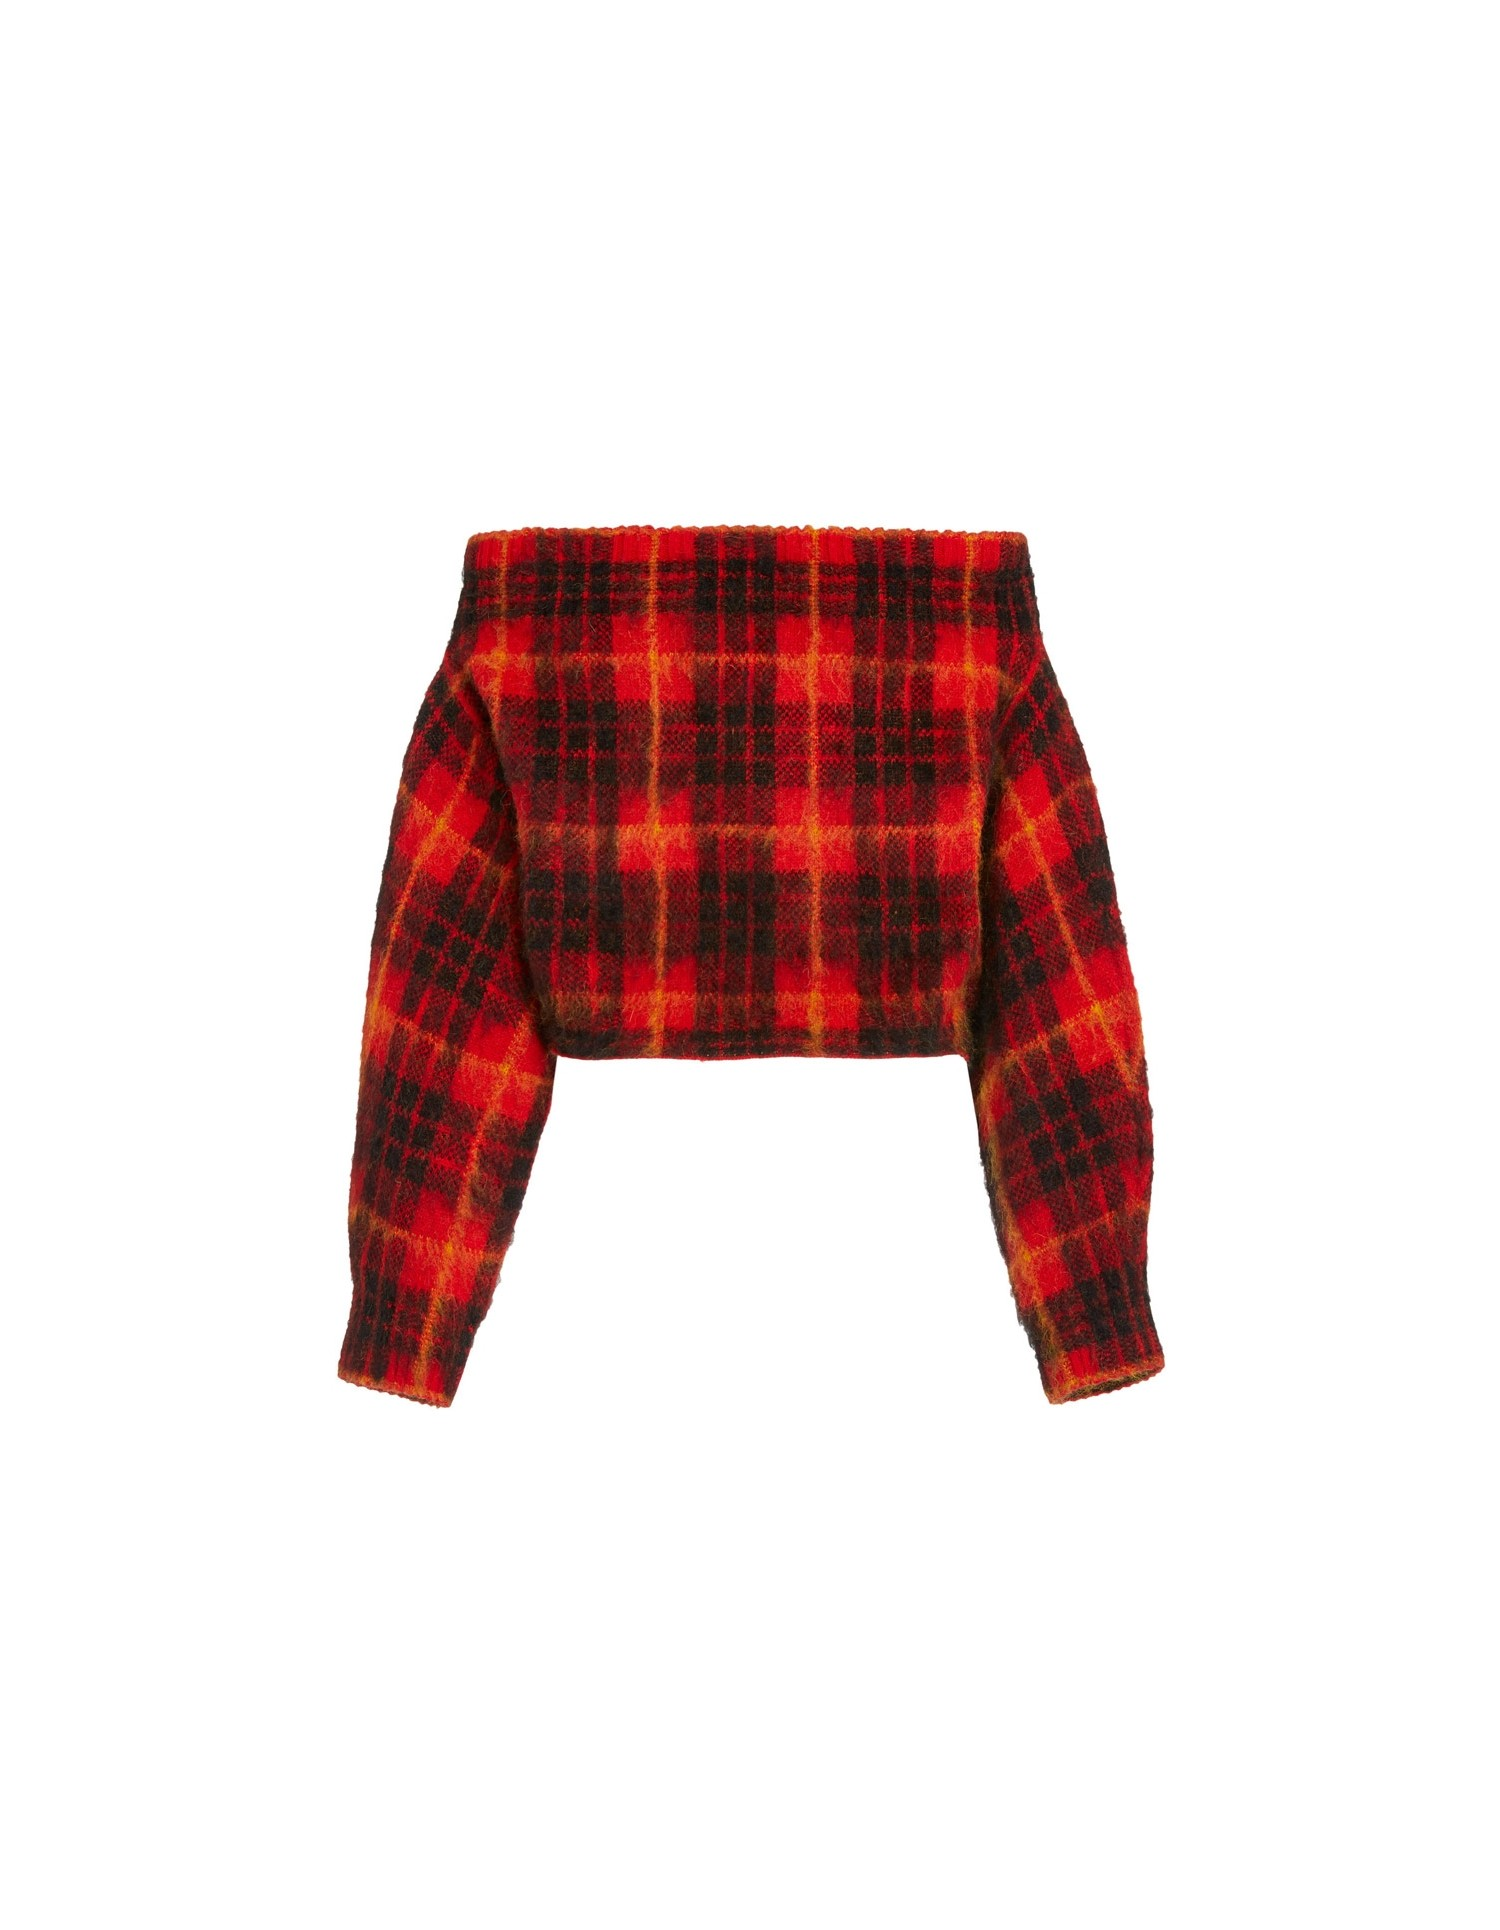 MONSE Plaid Off the Shoulder Mohair Sweater in Scarlet Plaid Multi Flat Back